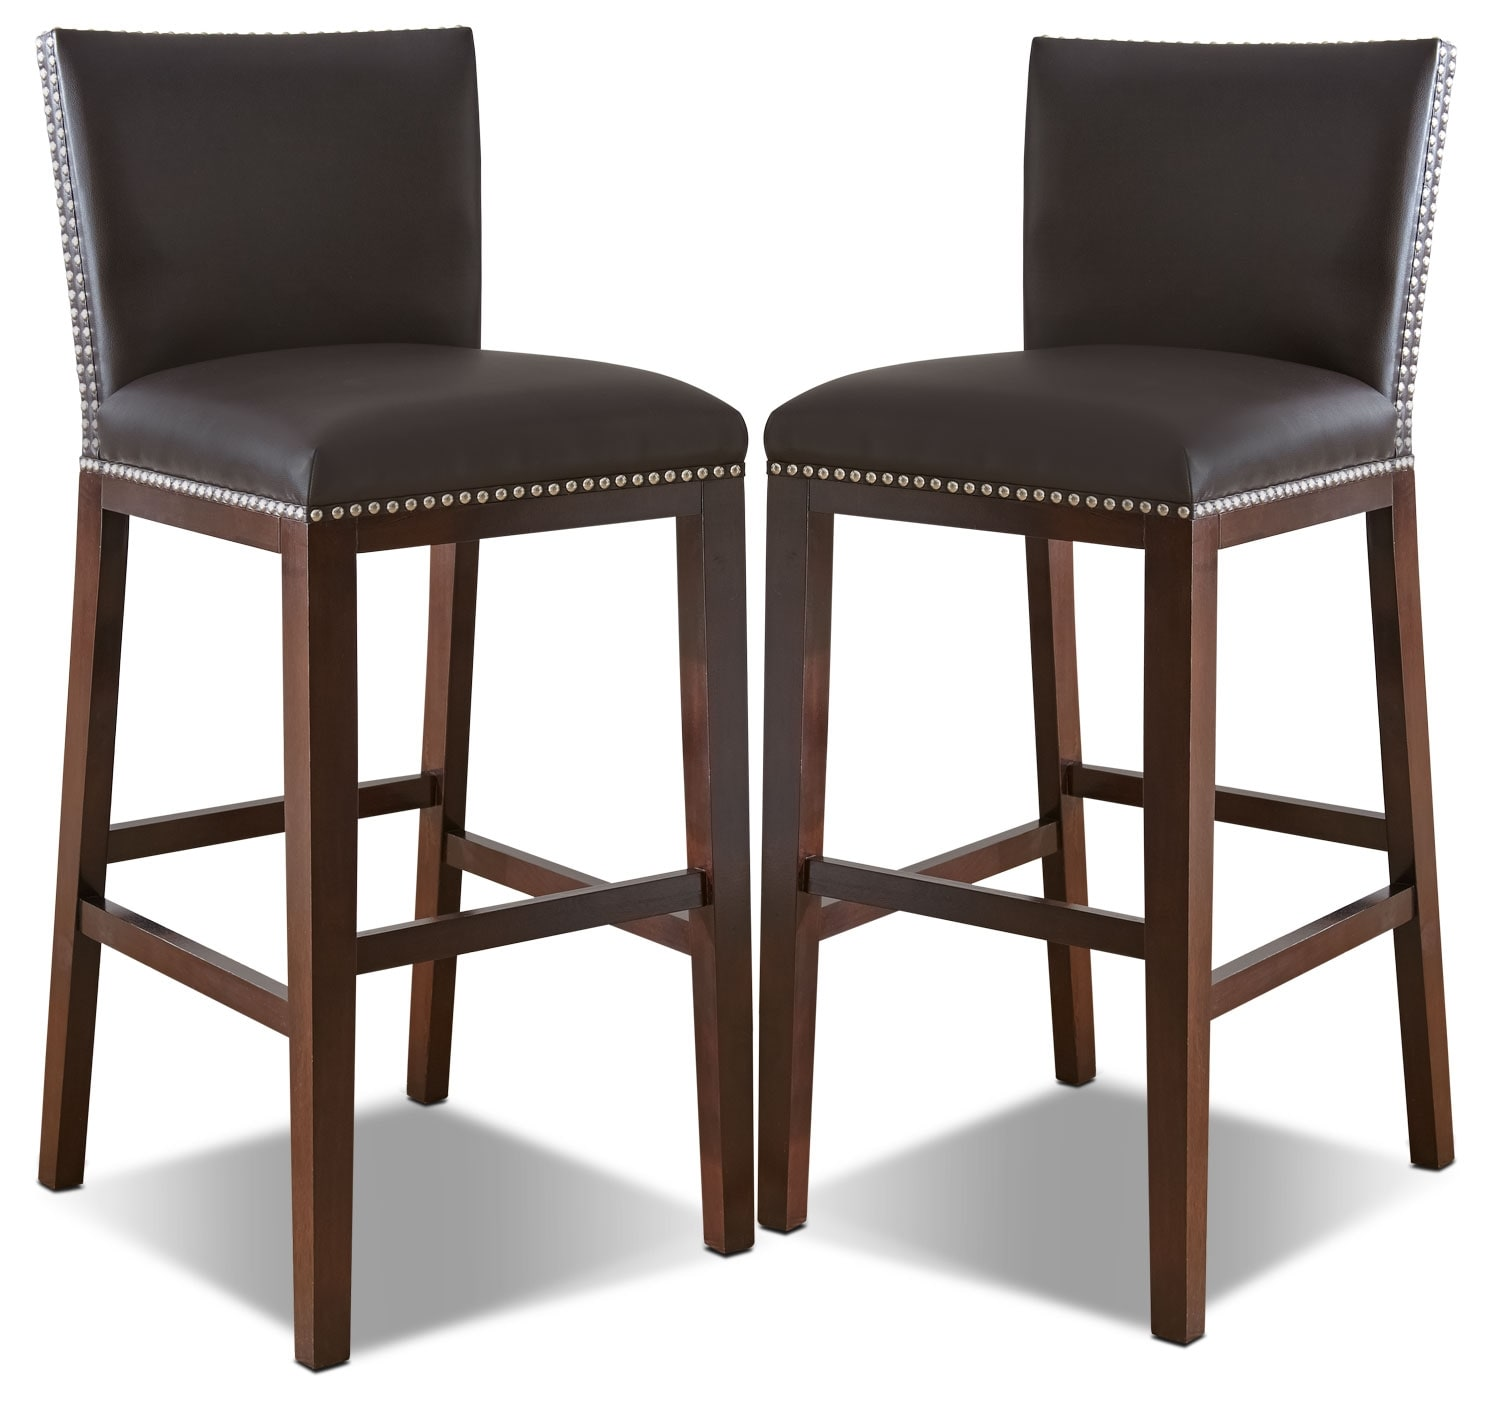 Tiffany Bar-Height Dining Chair, Set of 2 – Brown